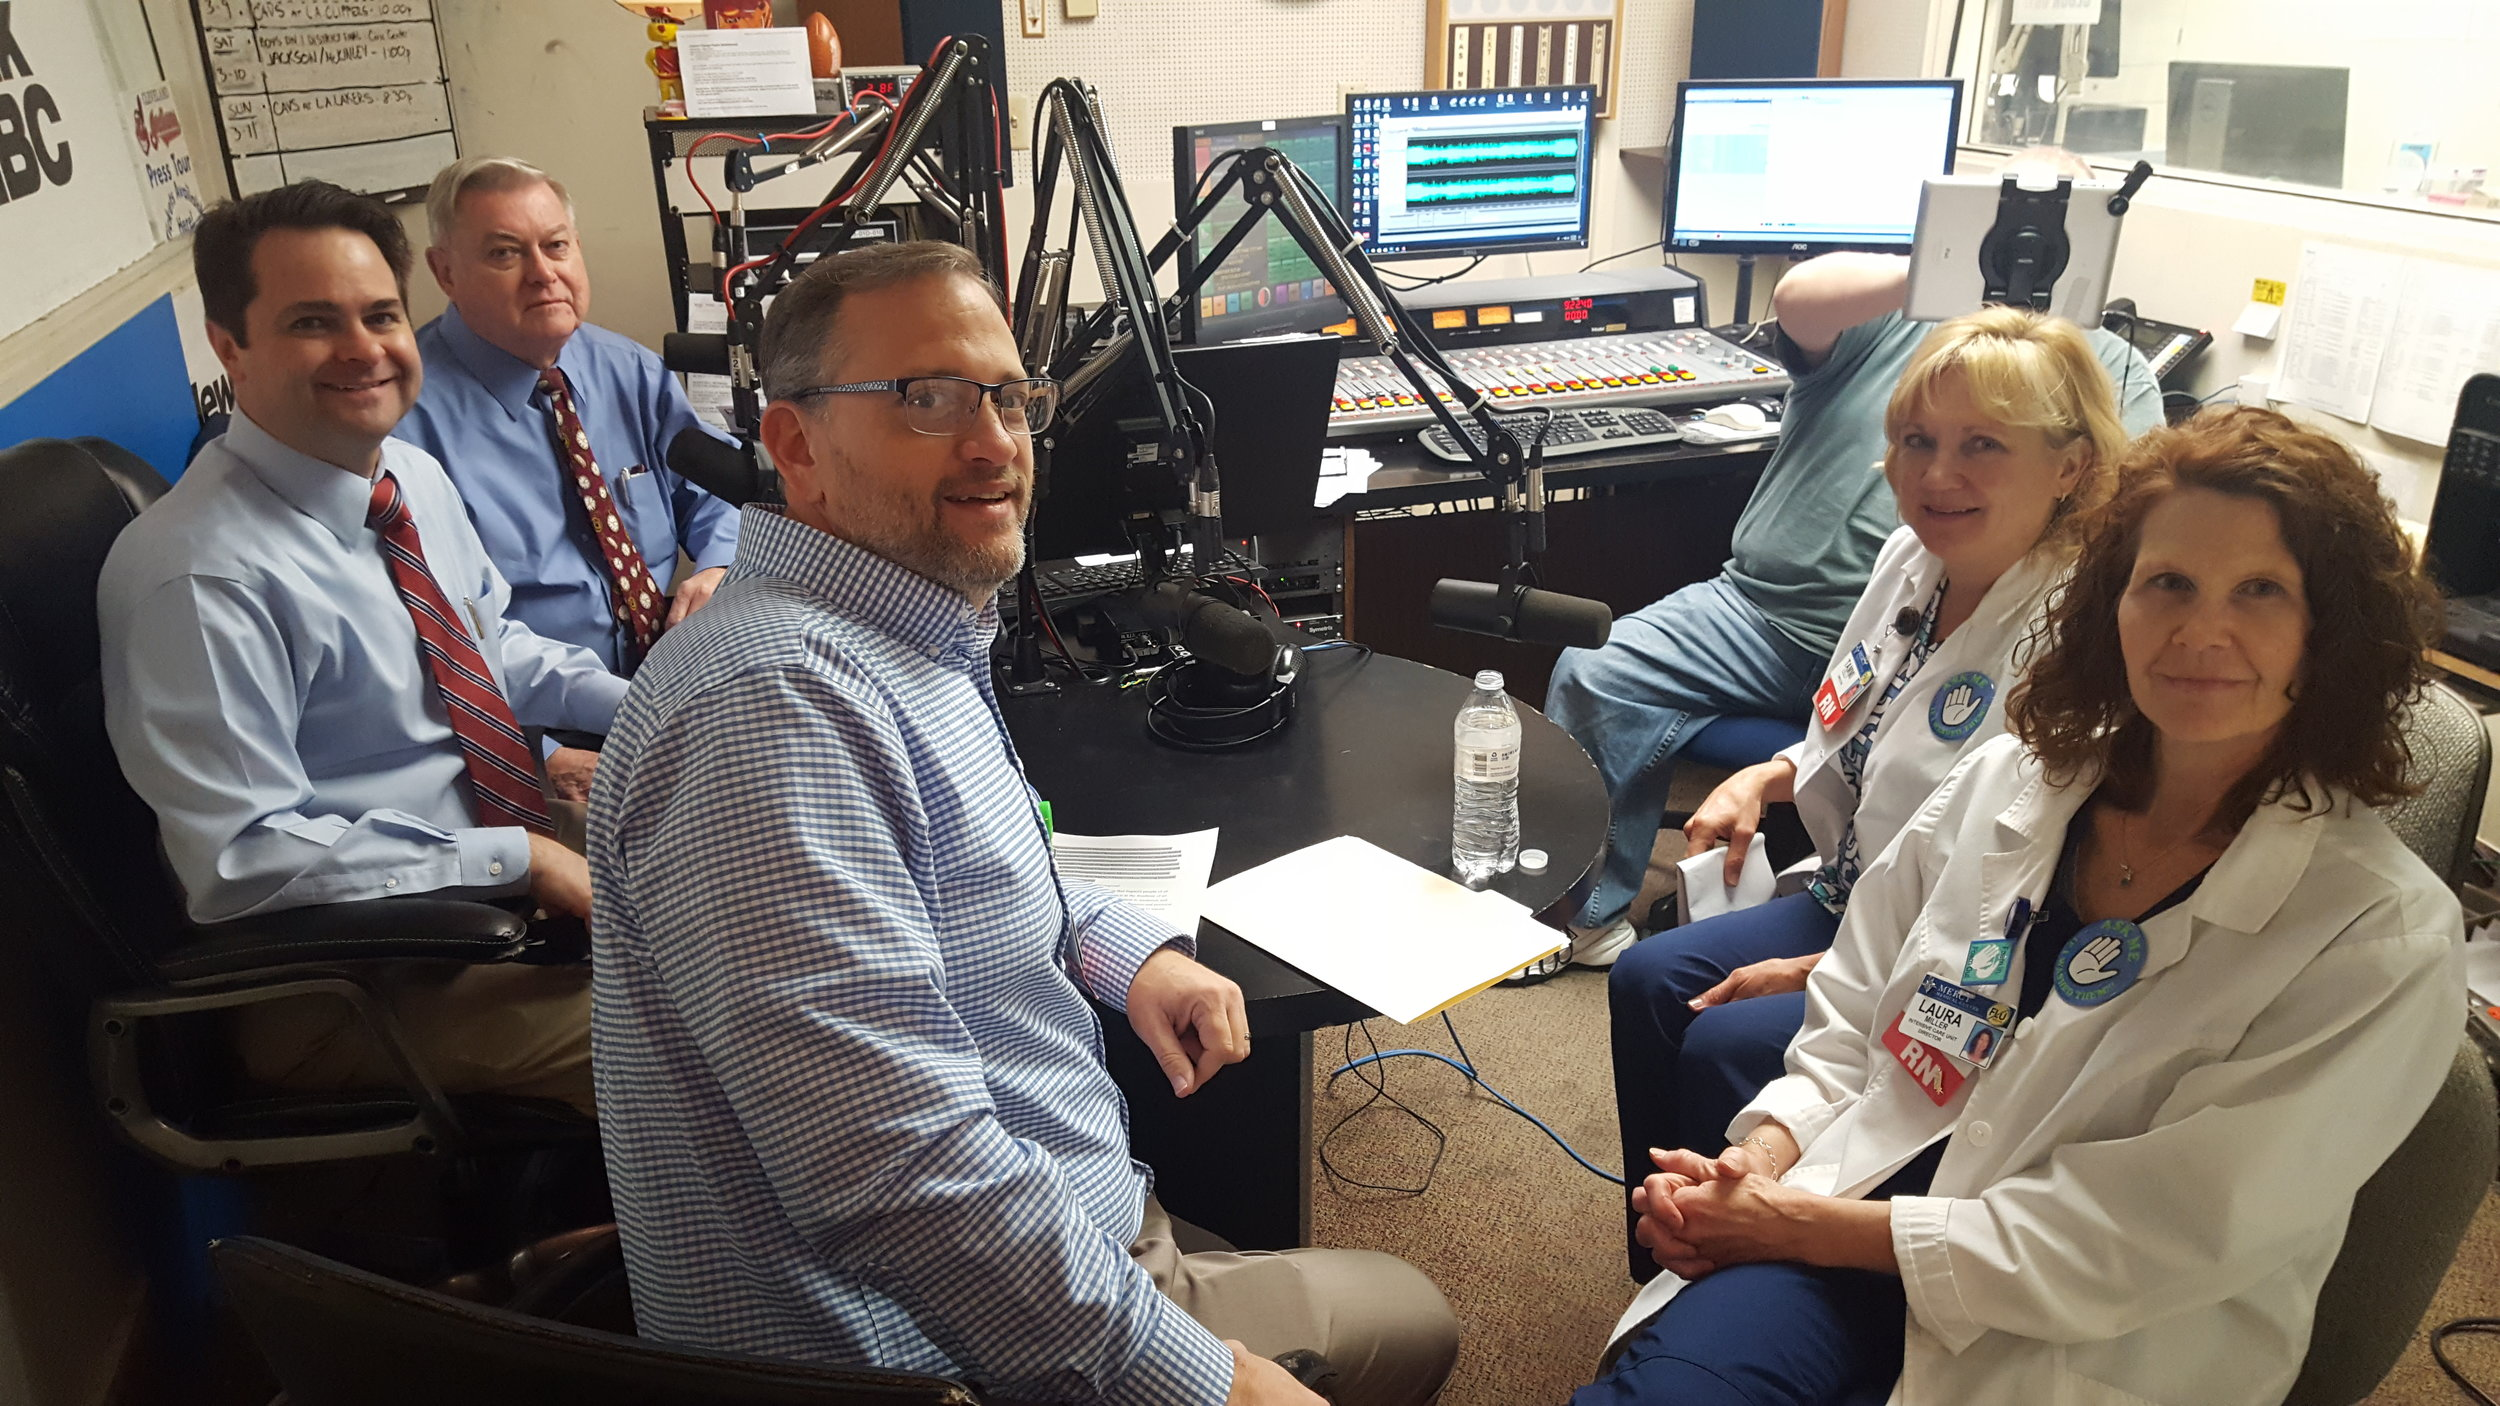 L-R: Hosts Brad White, R.Ph. and Paul White, R. Ph. are joined in the studio by Mercy Medical Center's Daniel Lane, Registered Nurse and Director of Quality & Risk Management, Laura Miller, MSN and Director, ICU/Dialysis, and Tammi Colly, RN, MSN, 5 Main/10Main Nursing Director